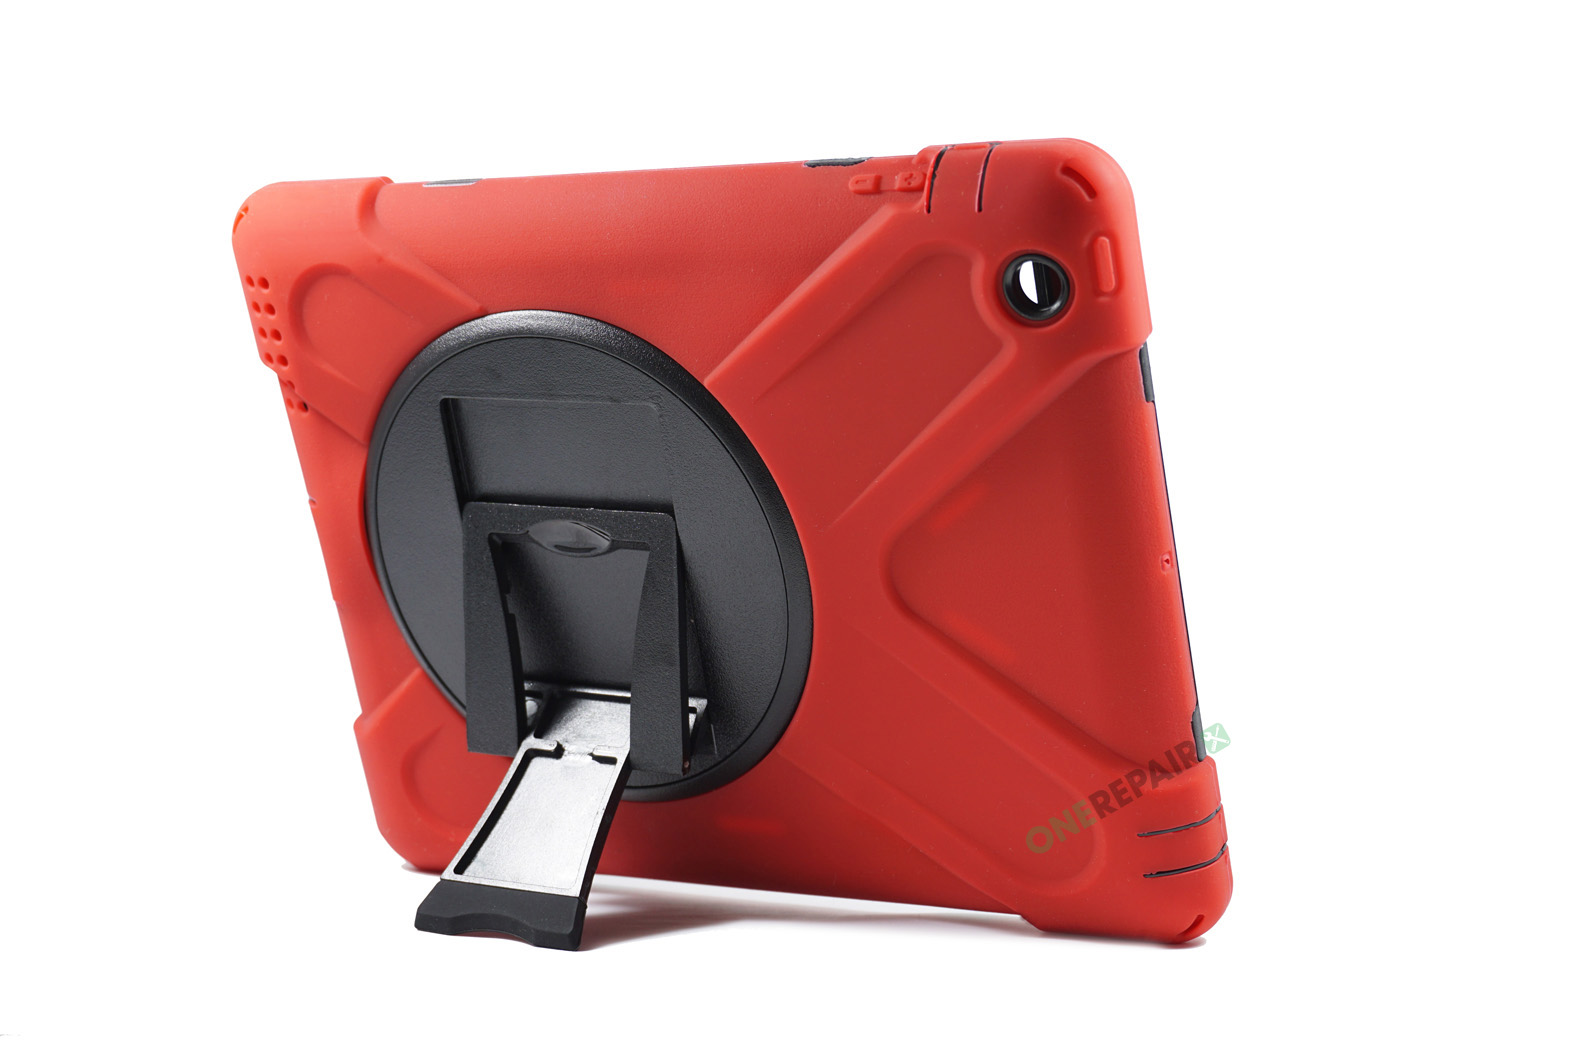 350984_iPad_2_3_4_A1395_A1396_A1430_A1403_1458_A1459_A1460_A1397_3-in-1_Bagcover_Cover_Børne_Skole_Hardcase_Roed_Billig_Godt_Beskyttelse_OneRepair_WM_00004